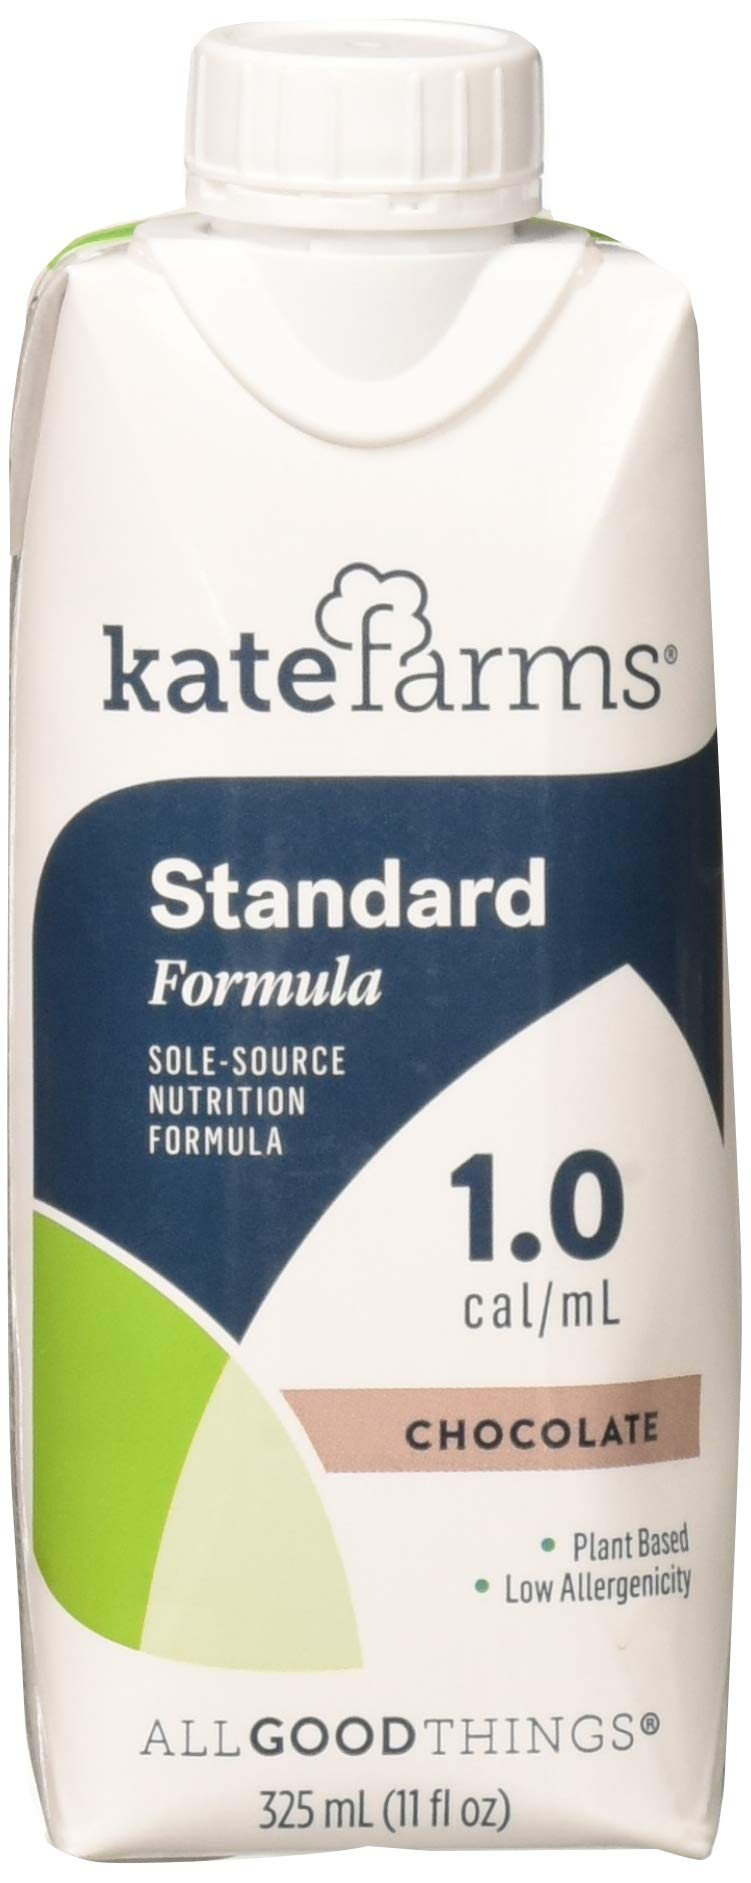 Kate Farms Standard 1.0 Chocolate Meal Replacement Formula Drink, Dairy, Soy, and Gluten-Free, Essential Vitamins, Organic Plant-Based Protein for Oral, Tube Fed, 11 Fluid Ounces (Case of 12)